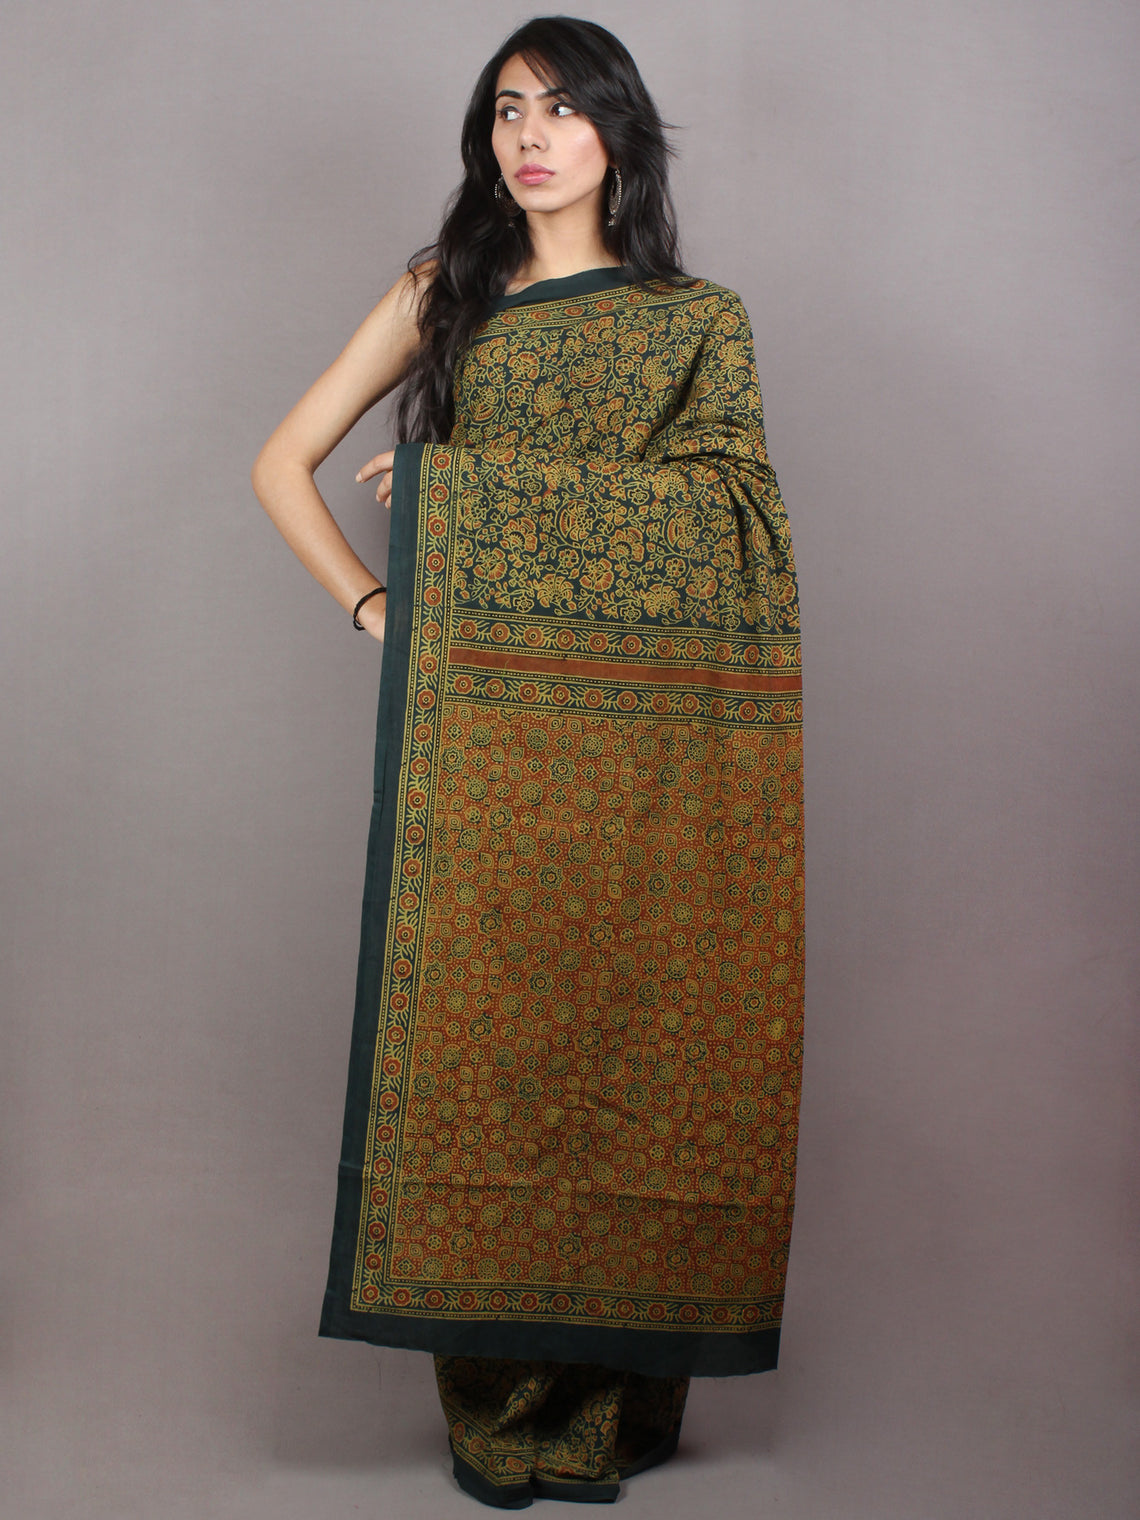 Dark Green Beige Mughal Nakashi Ajrakh Hand Block Printed in Natural Vegetable Colors Cotton Mul Saree - S03170746